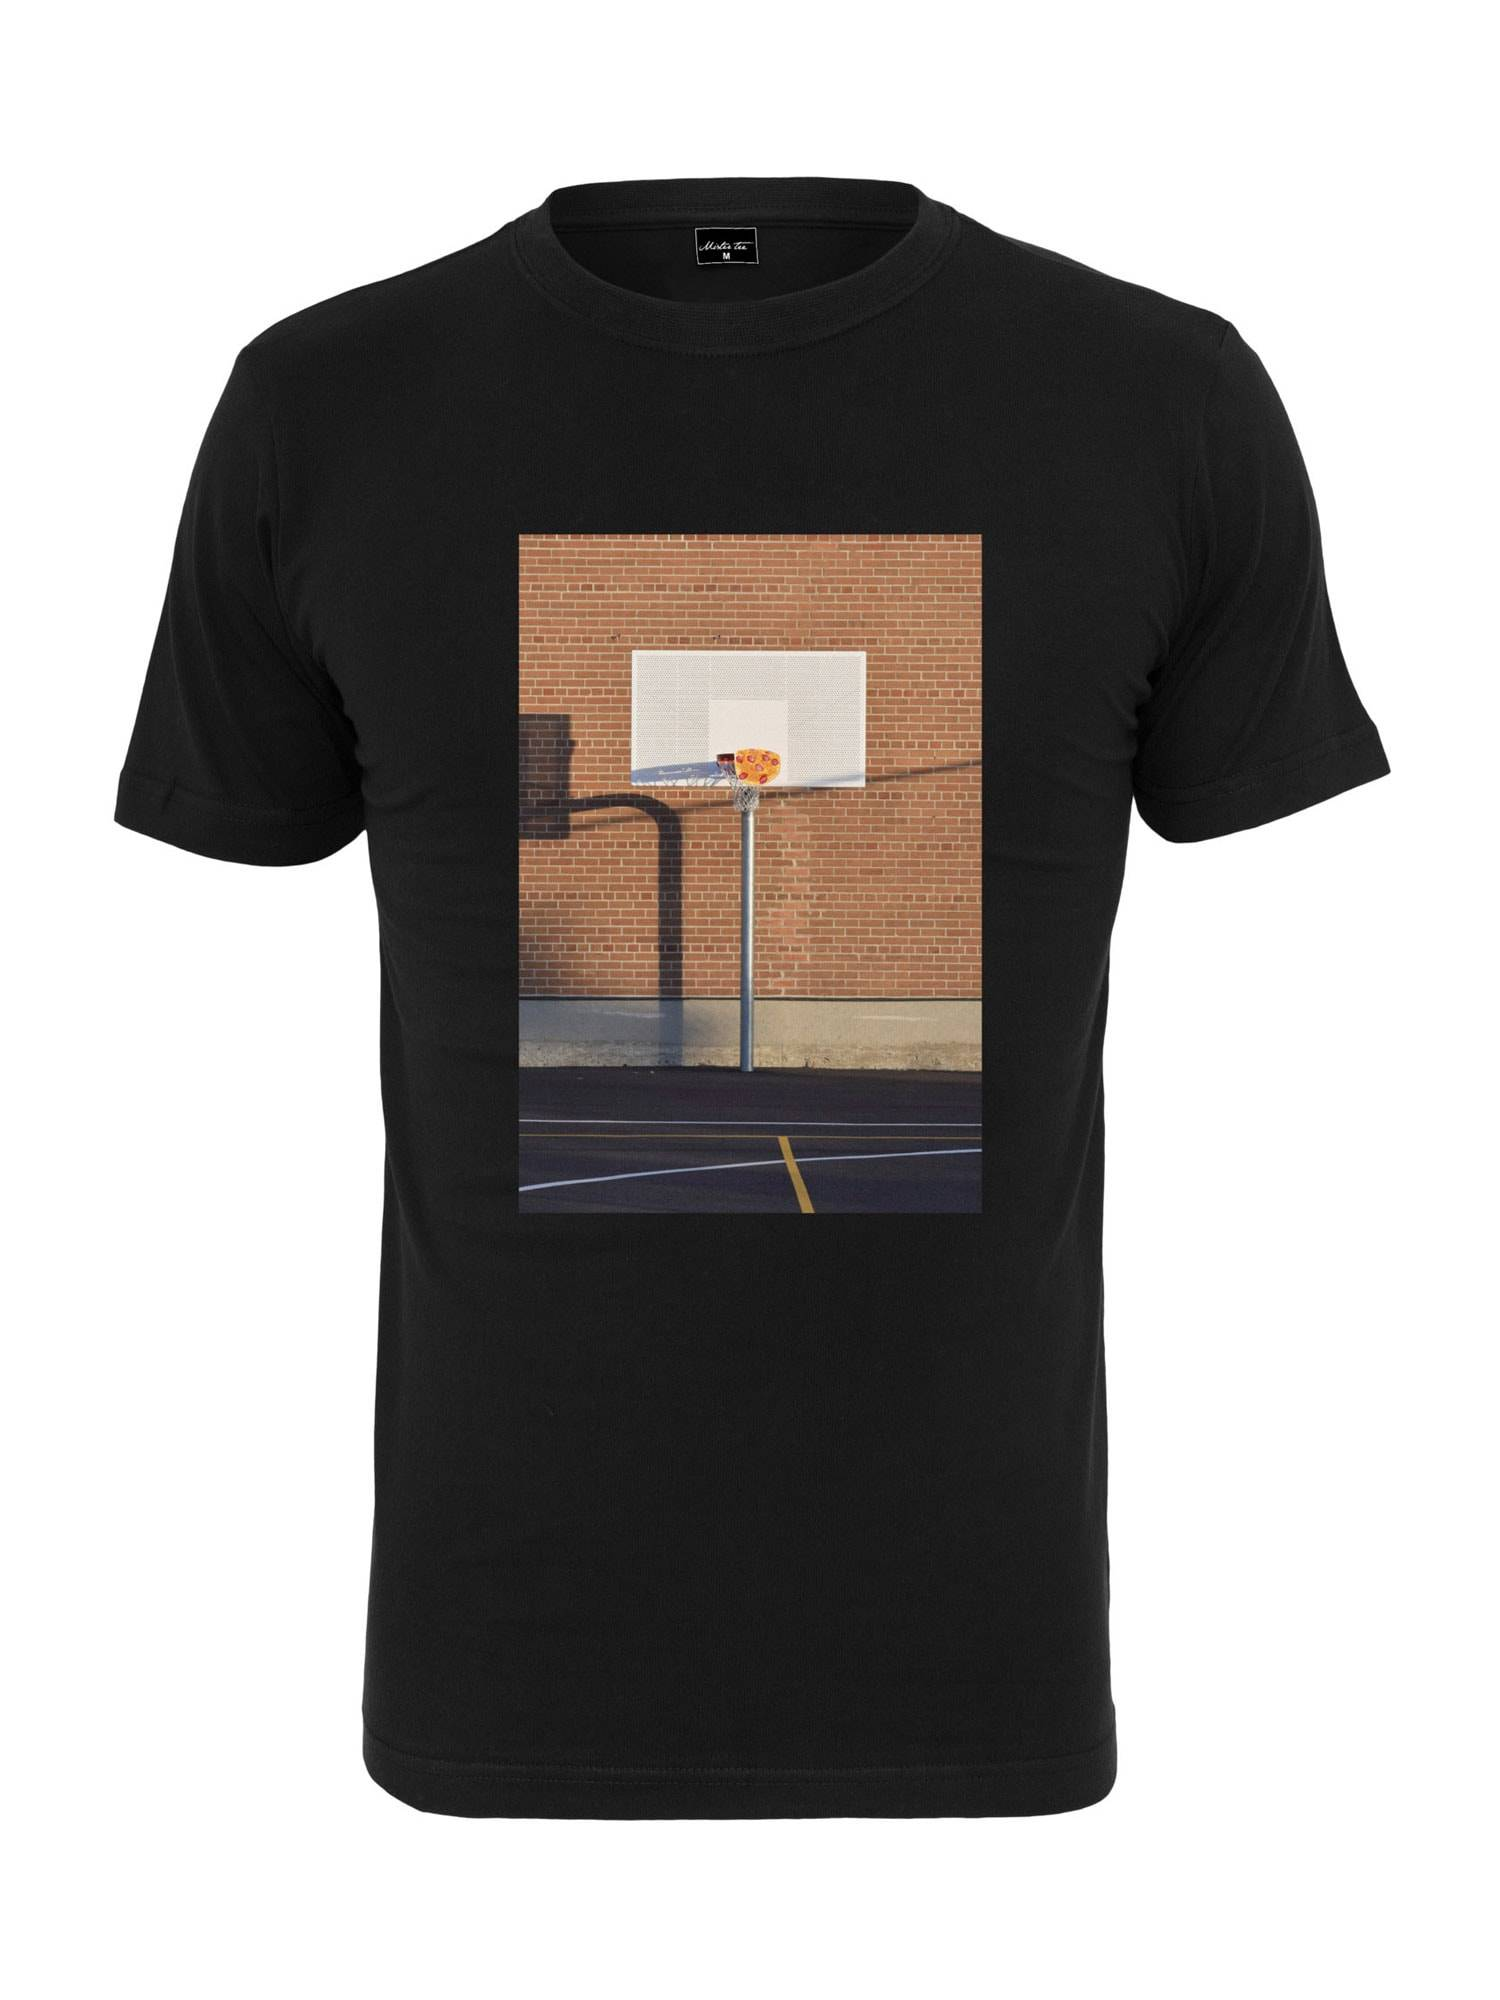 Tee T-Shirt 'Pizza Basketball Court'  - Noir - Taille: M - male